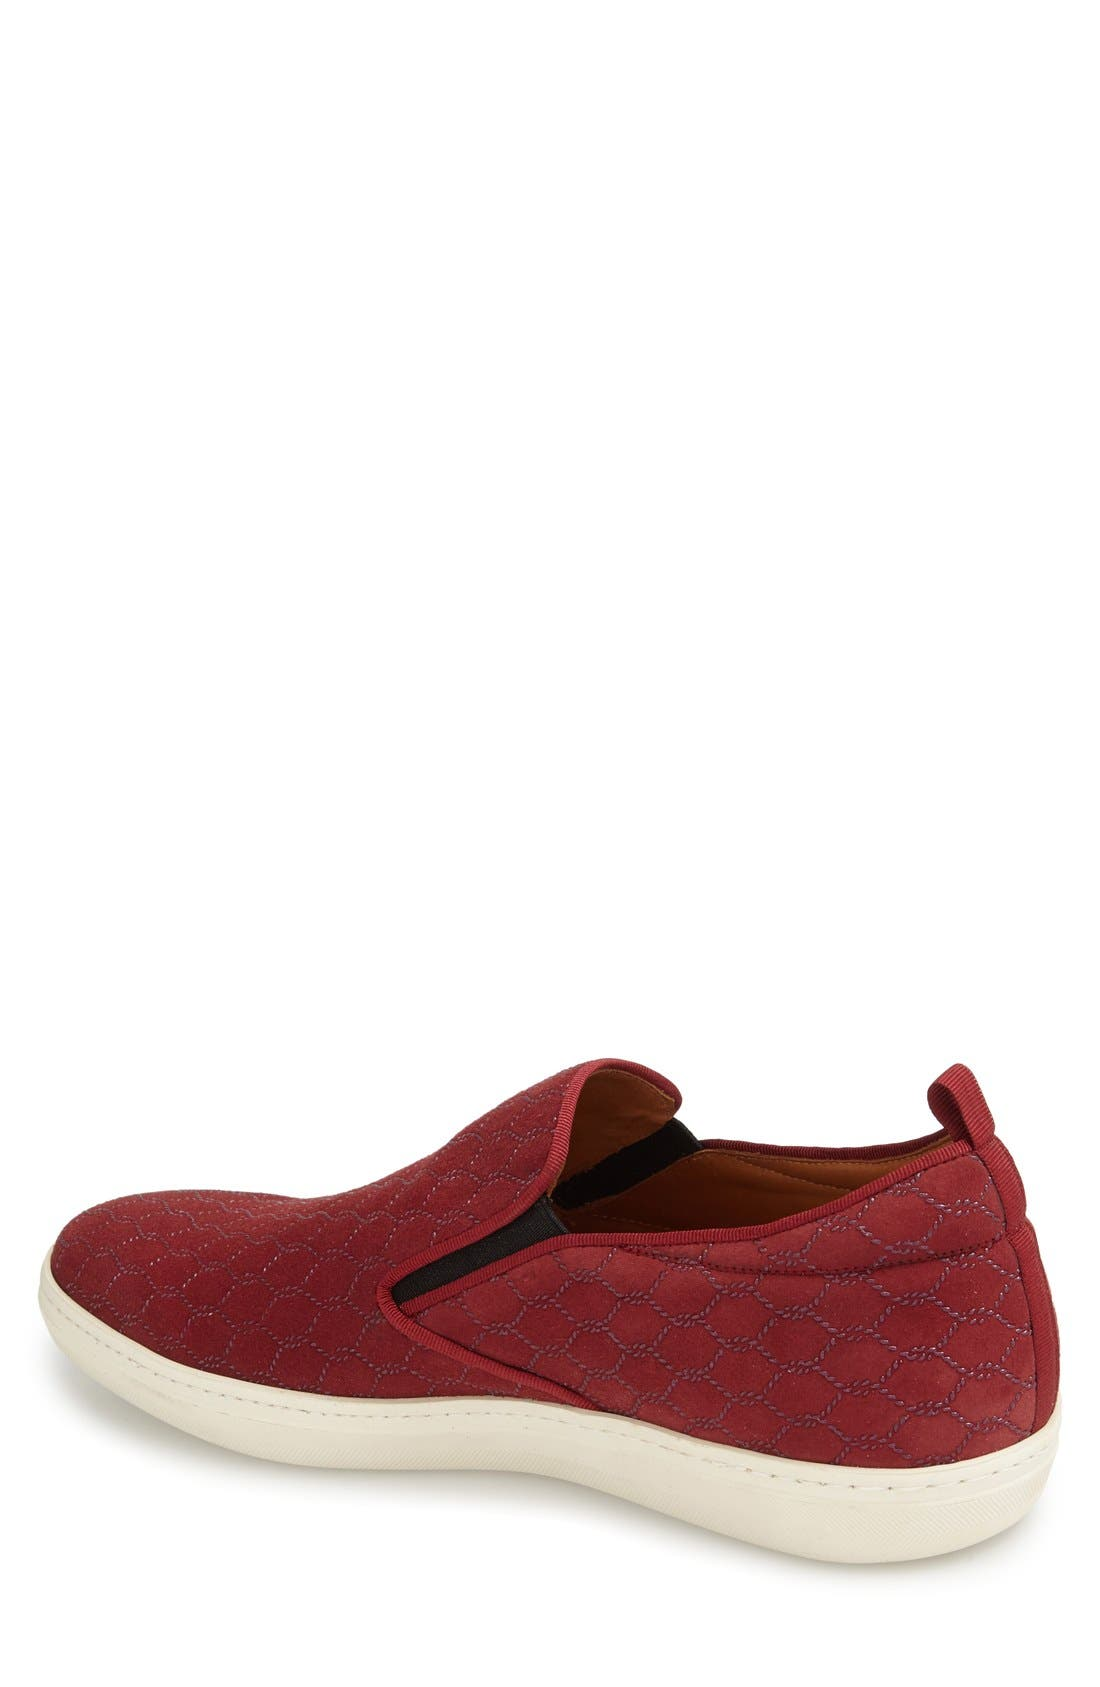 'Moneo' Slip-On,                             Alternate thumbnail 2, color,                             Burgundy Patterned Fabrc